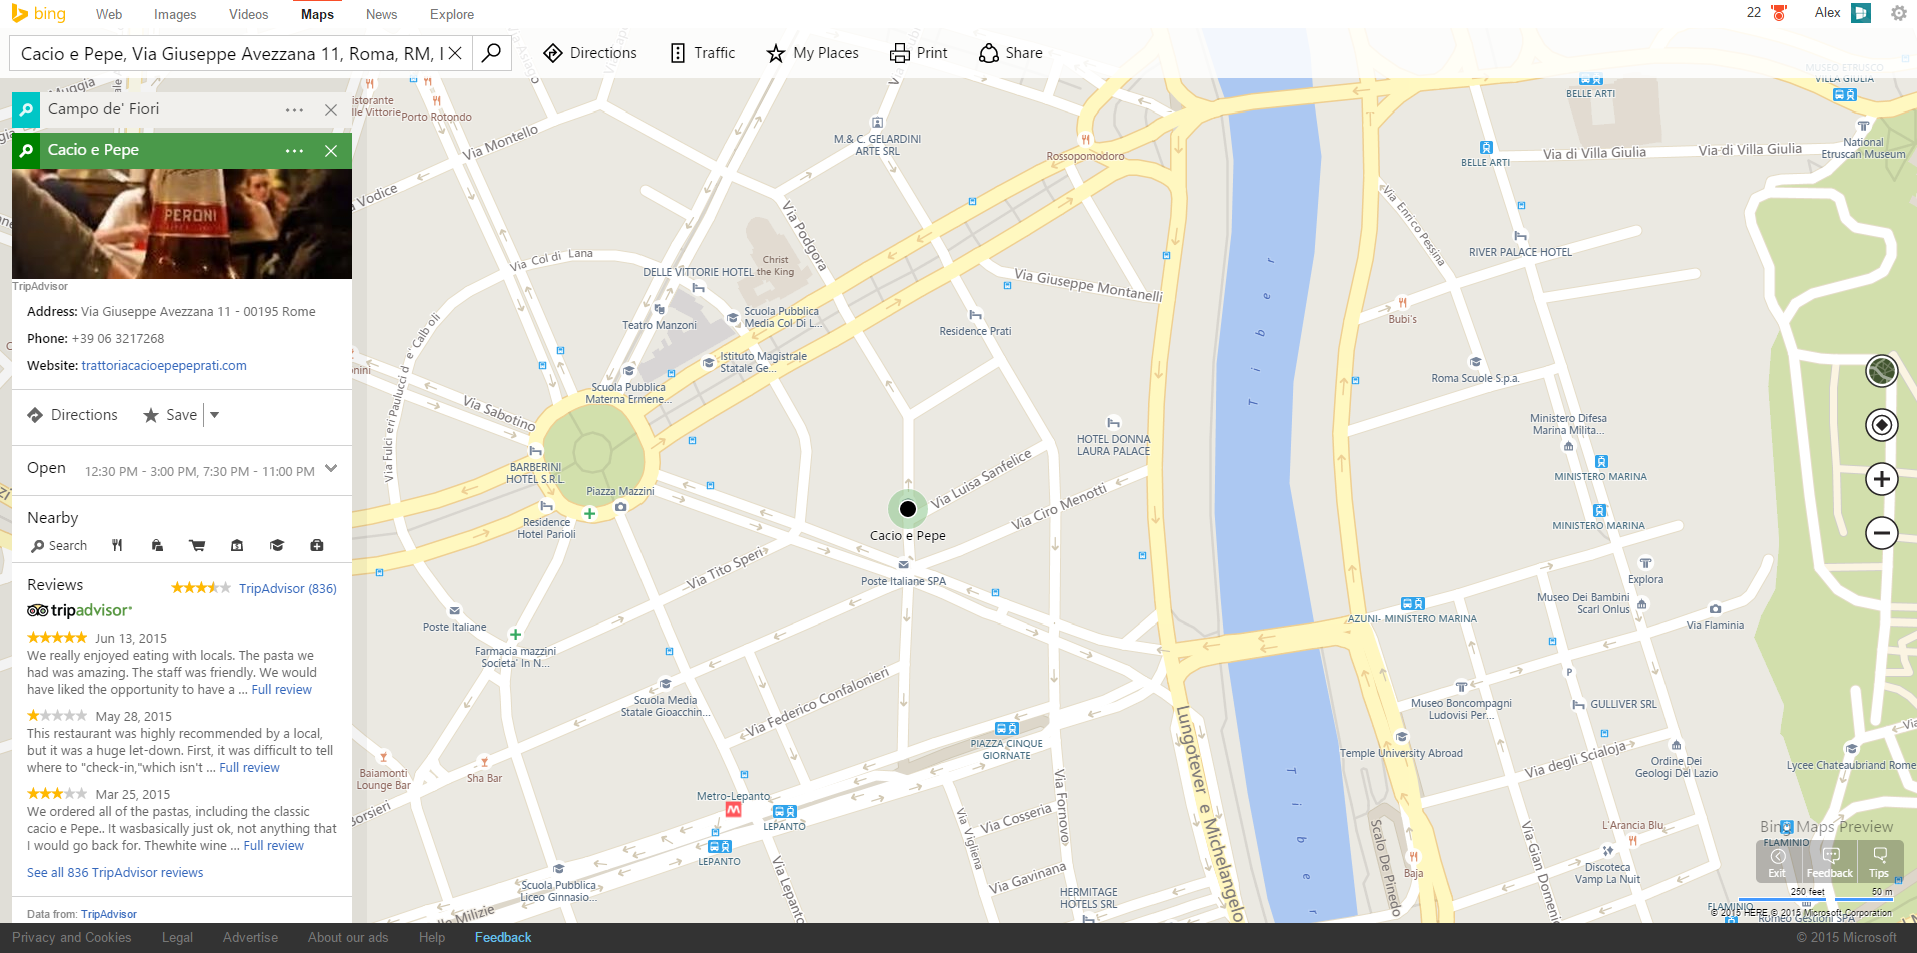 bing_maps_preview_1